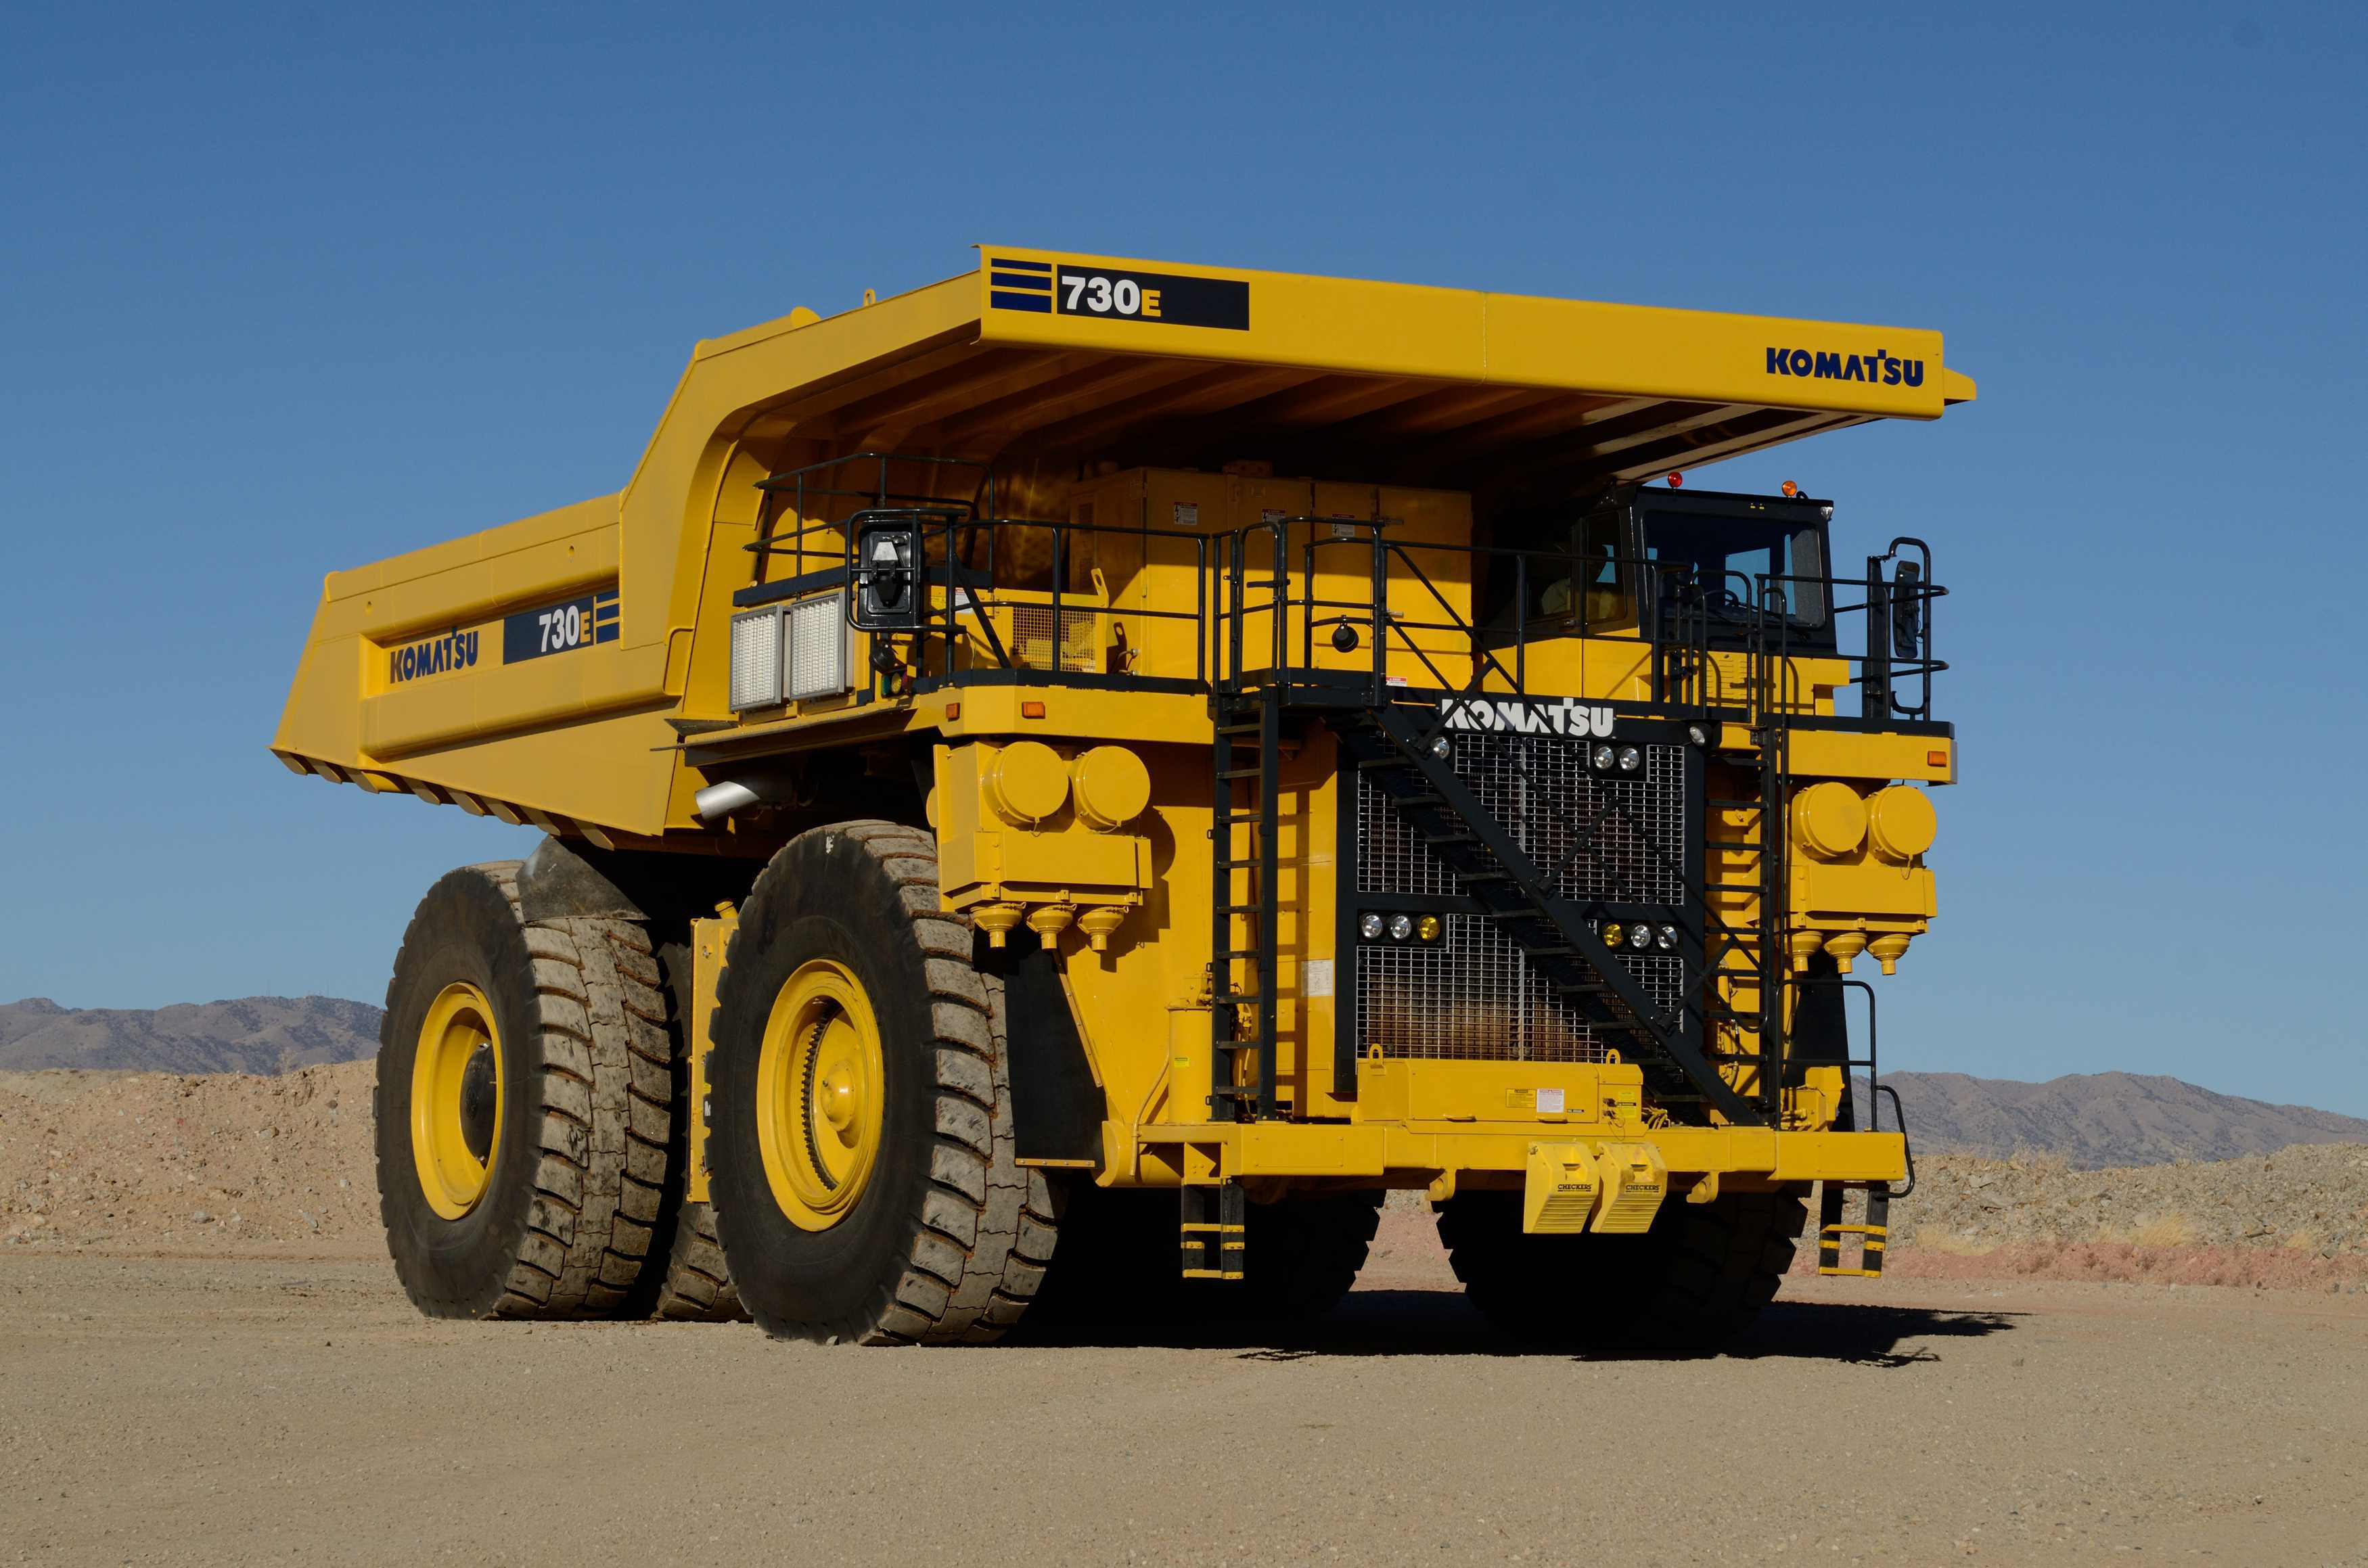 komatsu updates 730e mining truck with ac electric drive. Black Bedroom Furniture Sets. Home Design Ideas